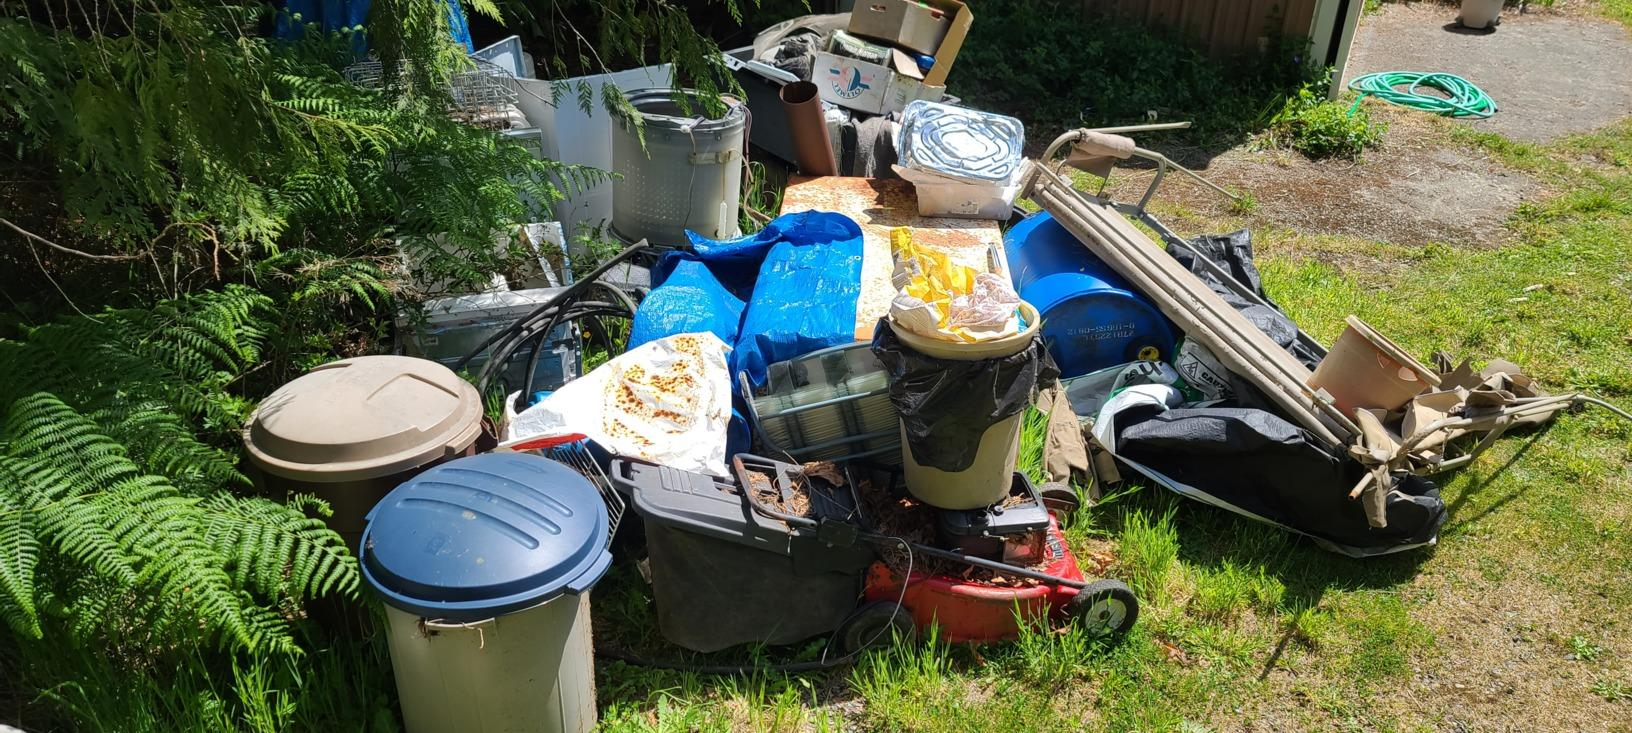 Junk Removal Services in Arlington, WA - Before Photo